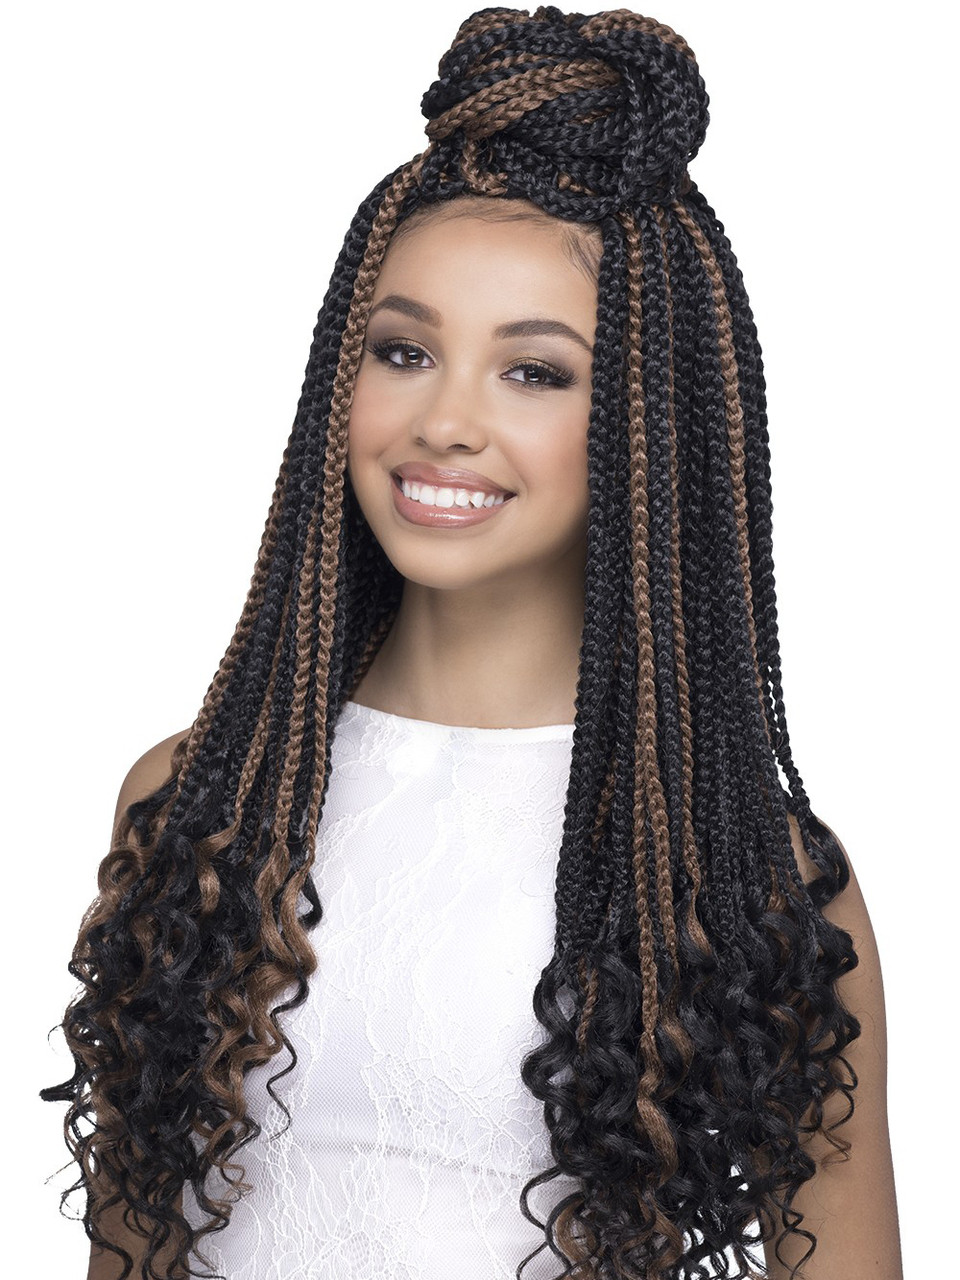 Royal Box 22 Curly Ends Synthetic Braids